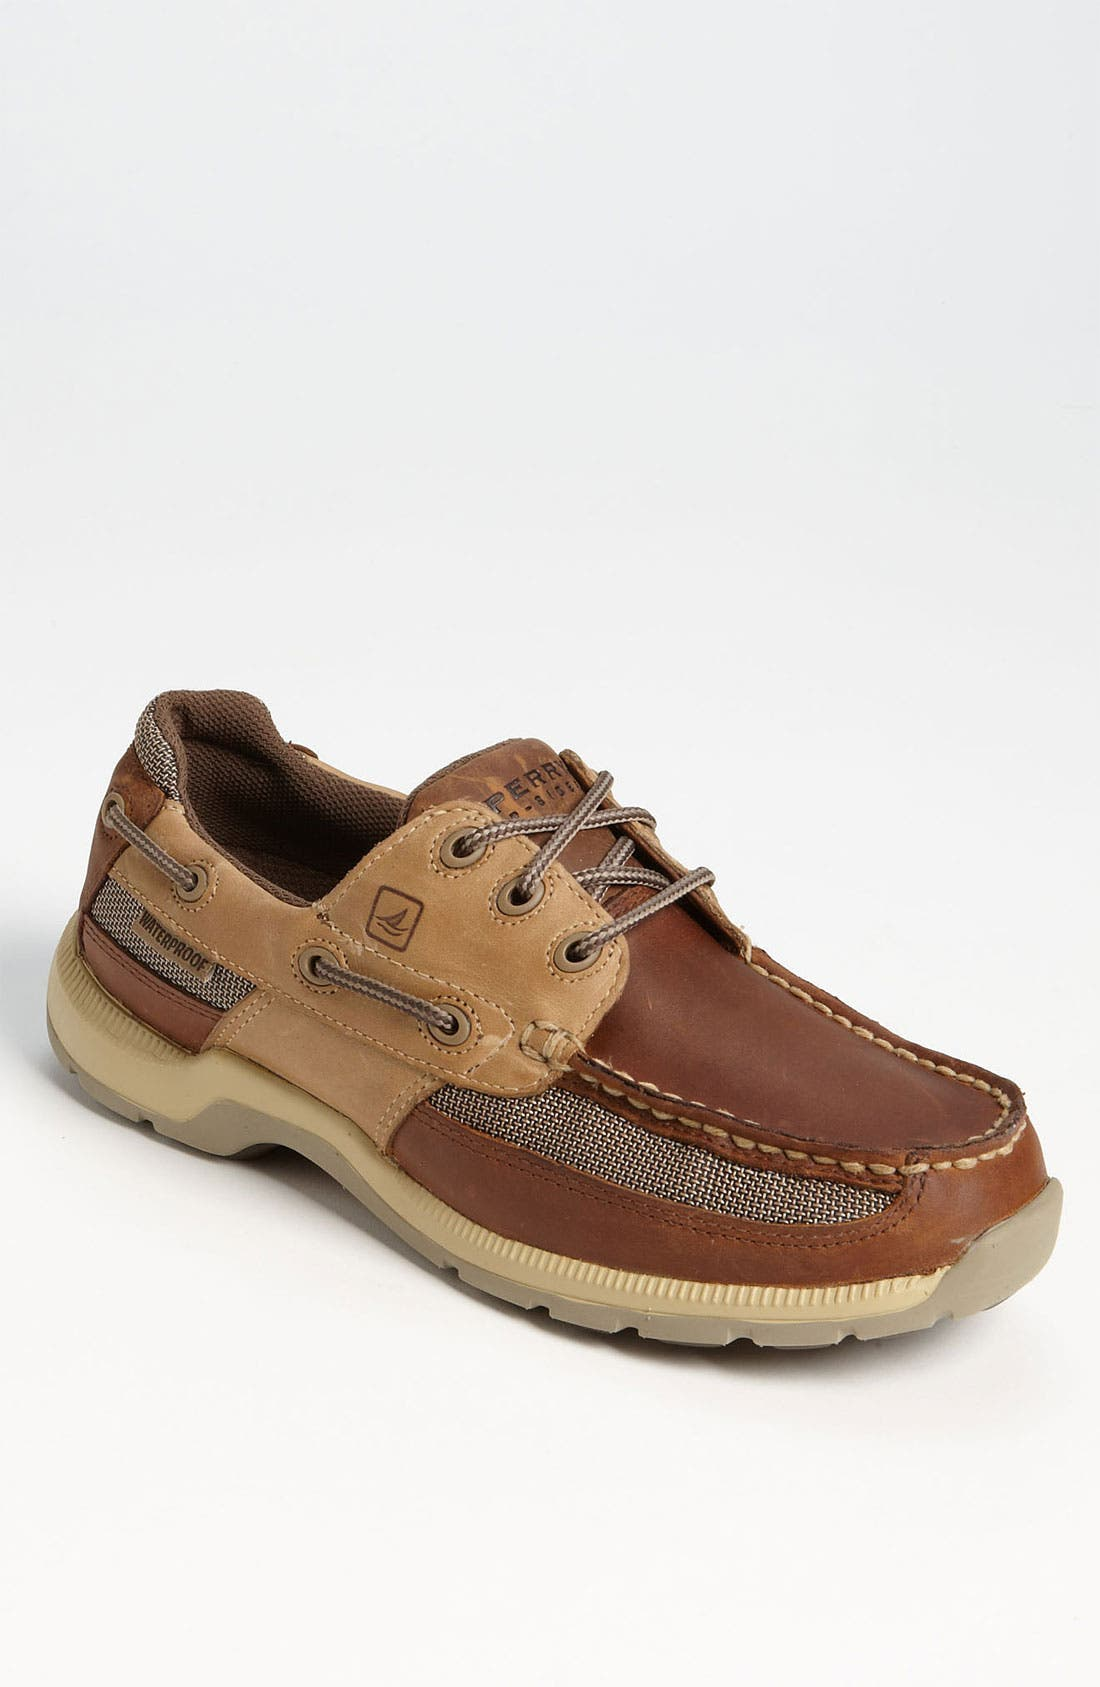 Alternate Image 1 Selected - Sperry Top-Sider® 'Cascade' Three Eye Boat Shoe